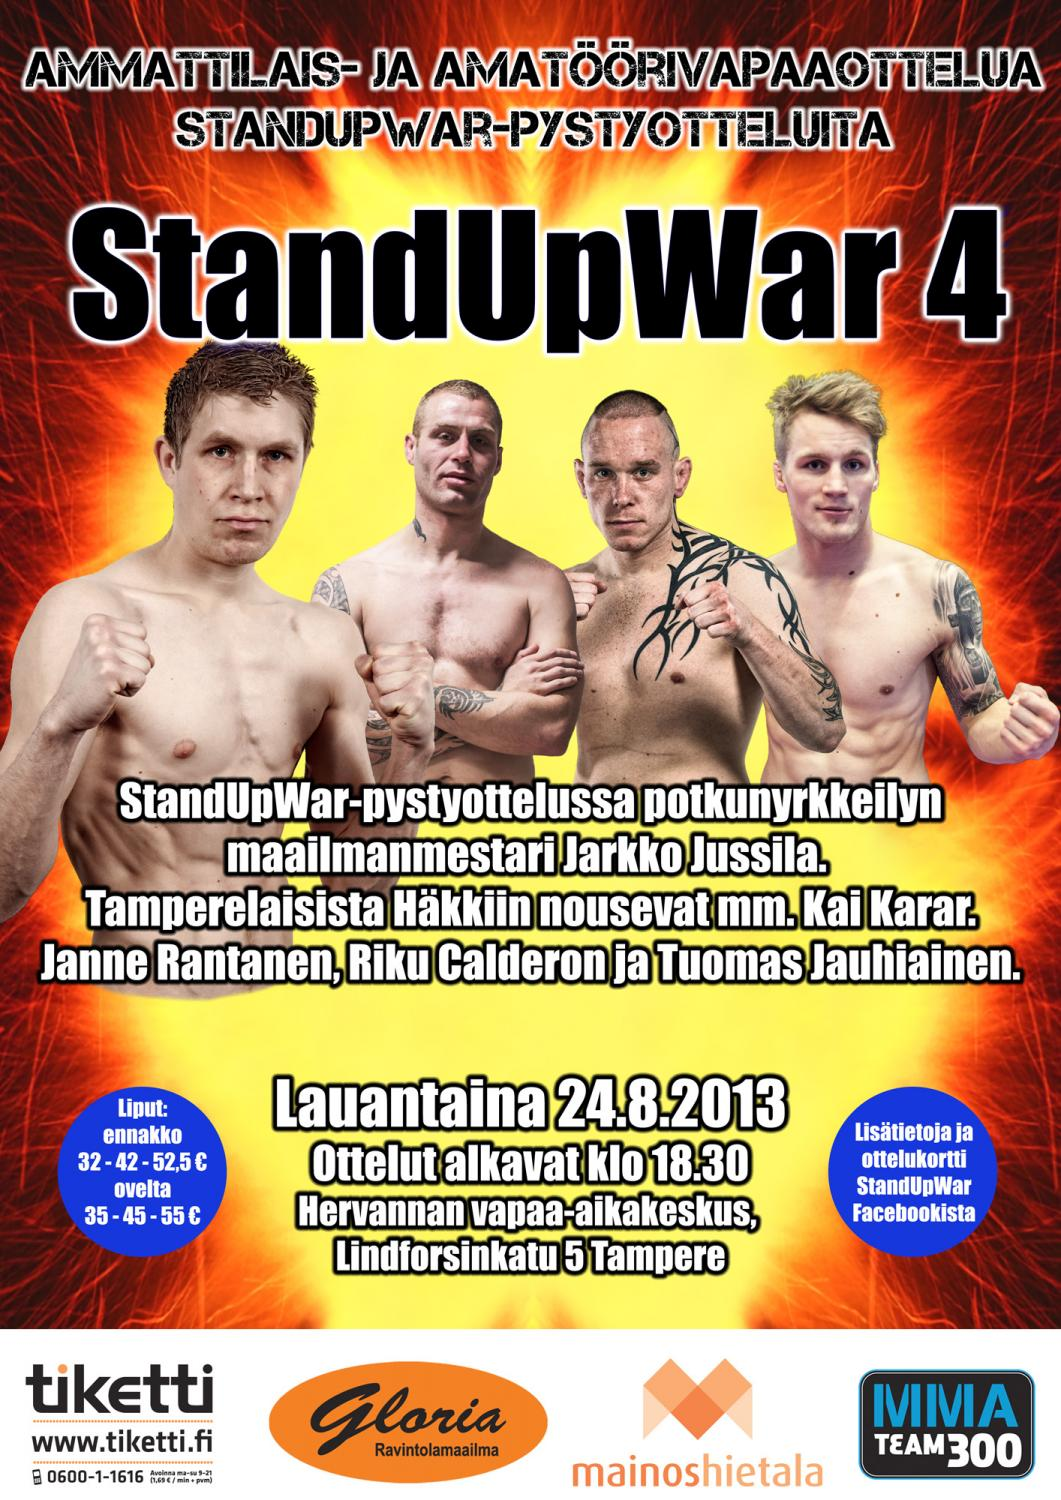 StandUpWar 4 takes on place 24th of August in Tampere, Finland